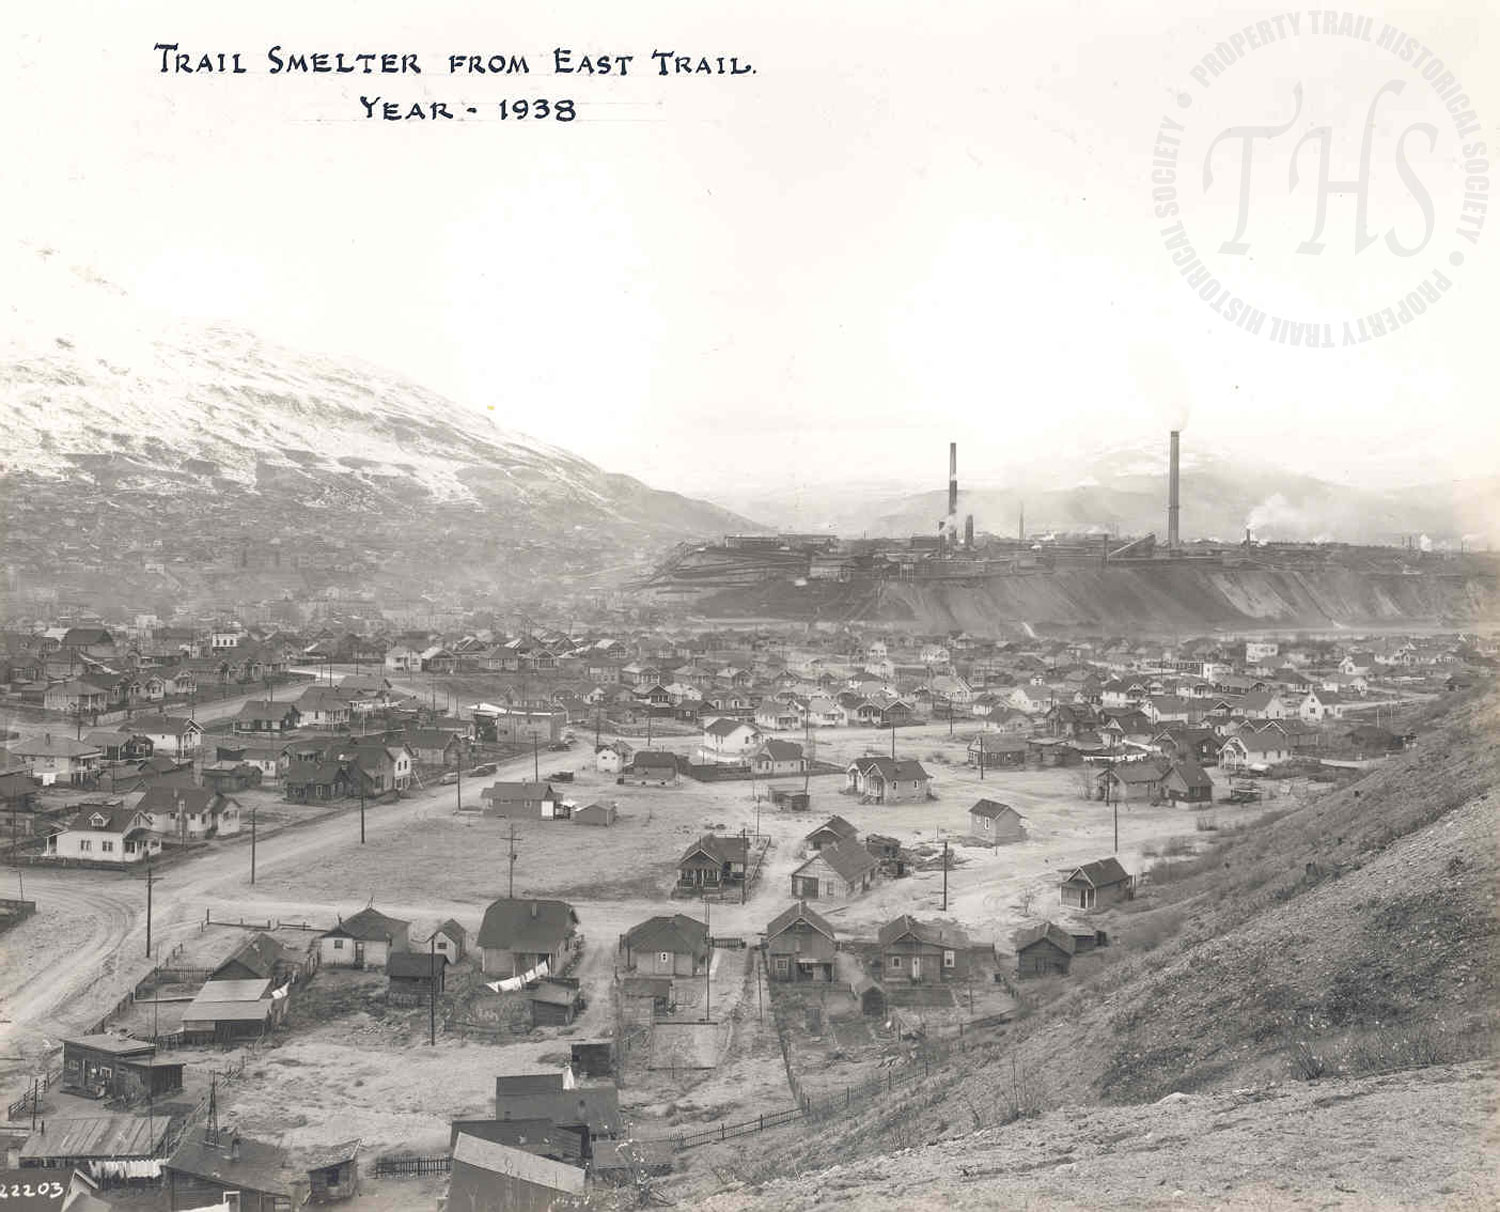 5  th   Avenue in East Trail, towards Smelter (Hughes) - 1938